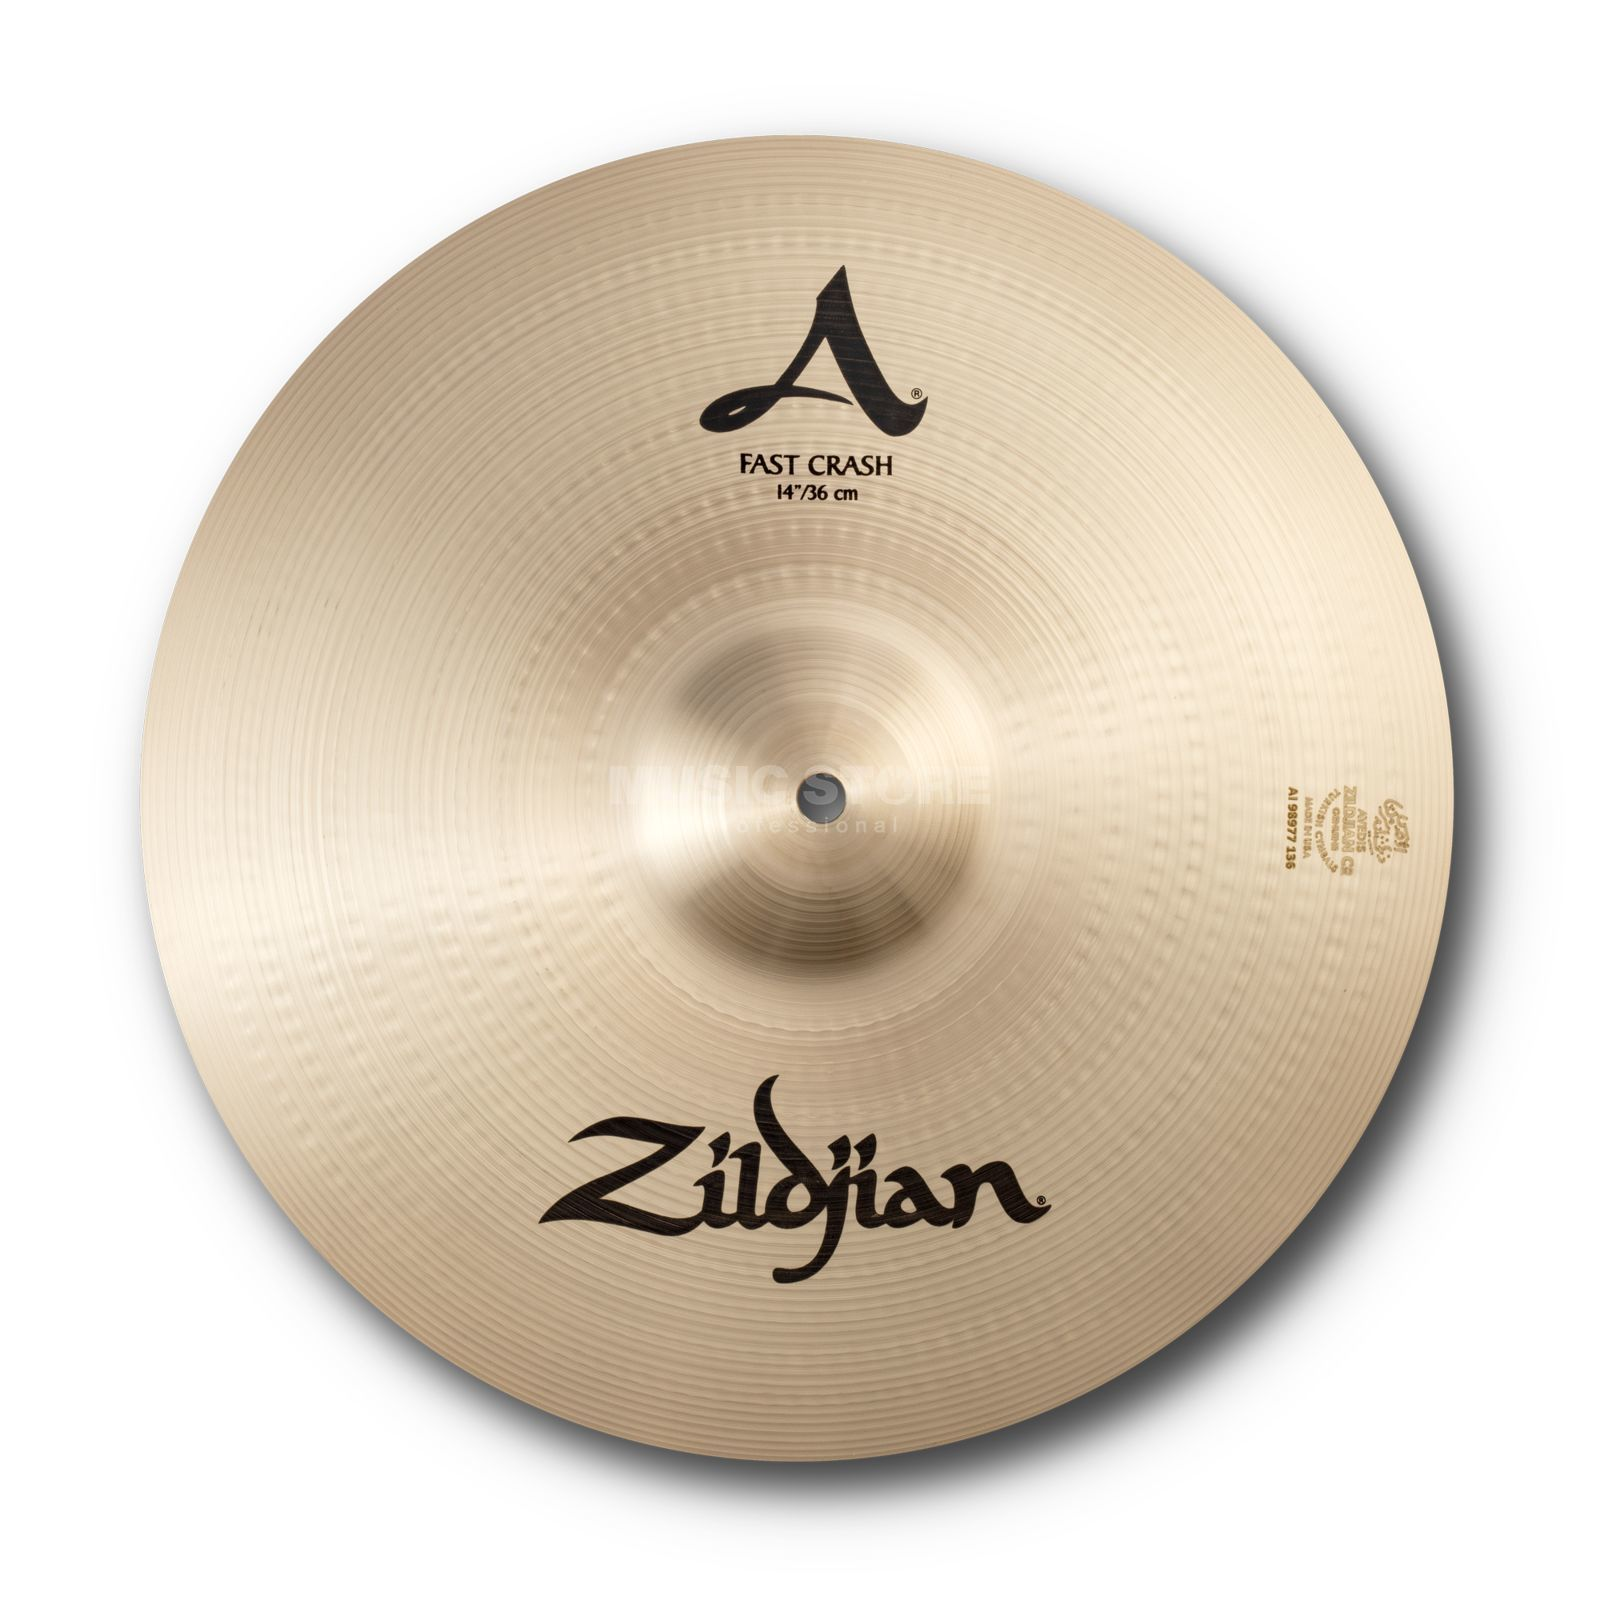 "Zildjian A' Zildjian Fast Crash 14"" Traditional Finish Produktbild"